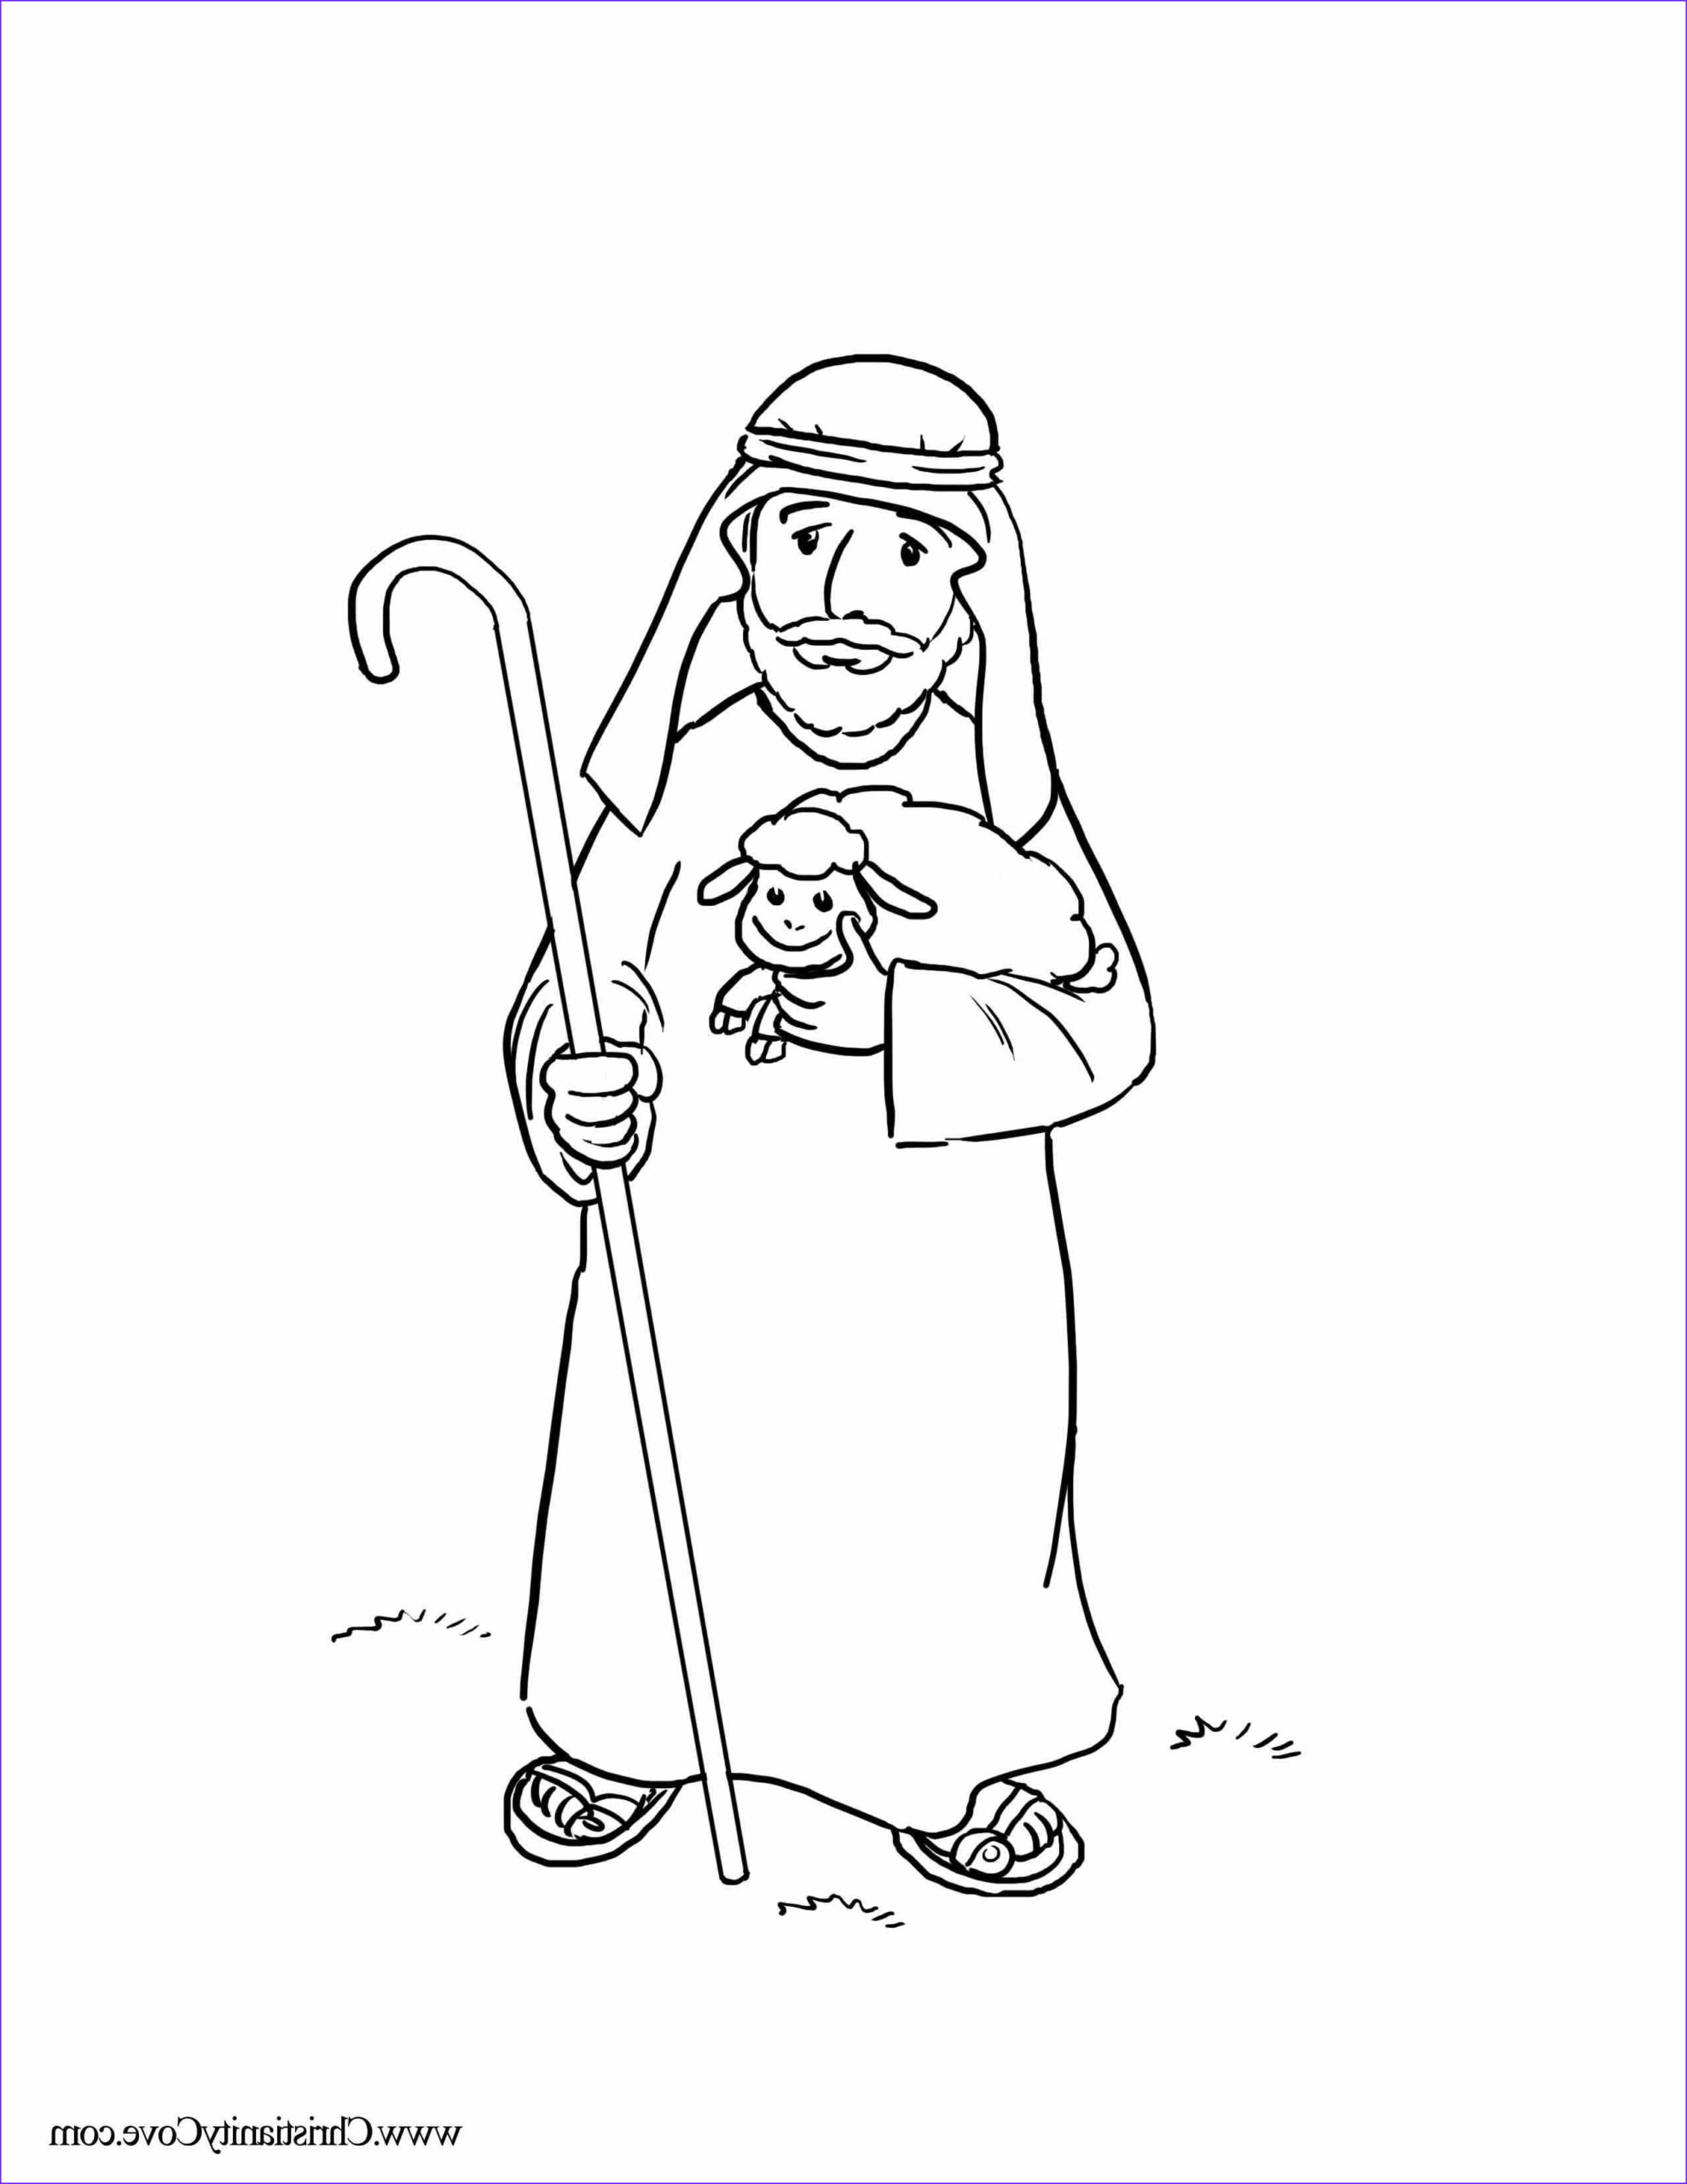 Printable Bible Coloring Pages Inspirational Image Bible Printables Coloring Pages for Sunday School